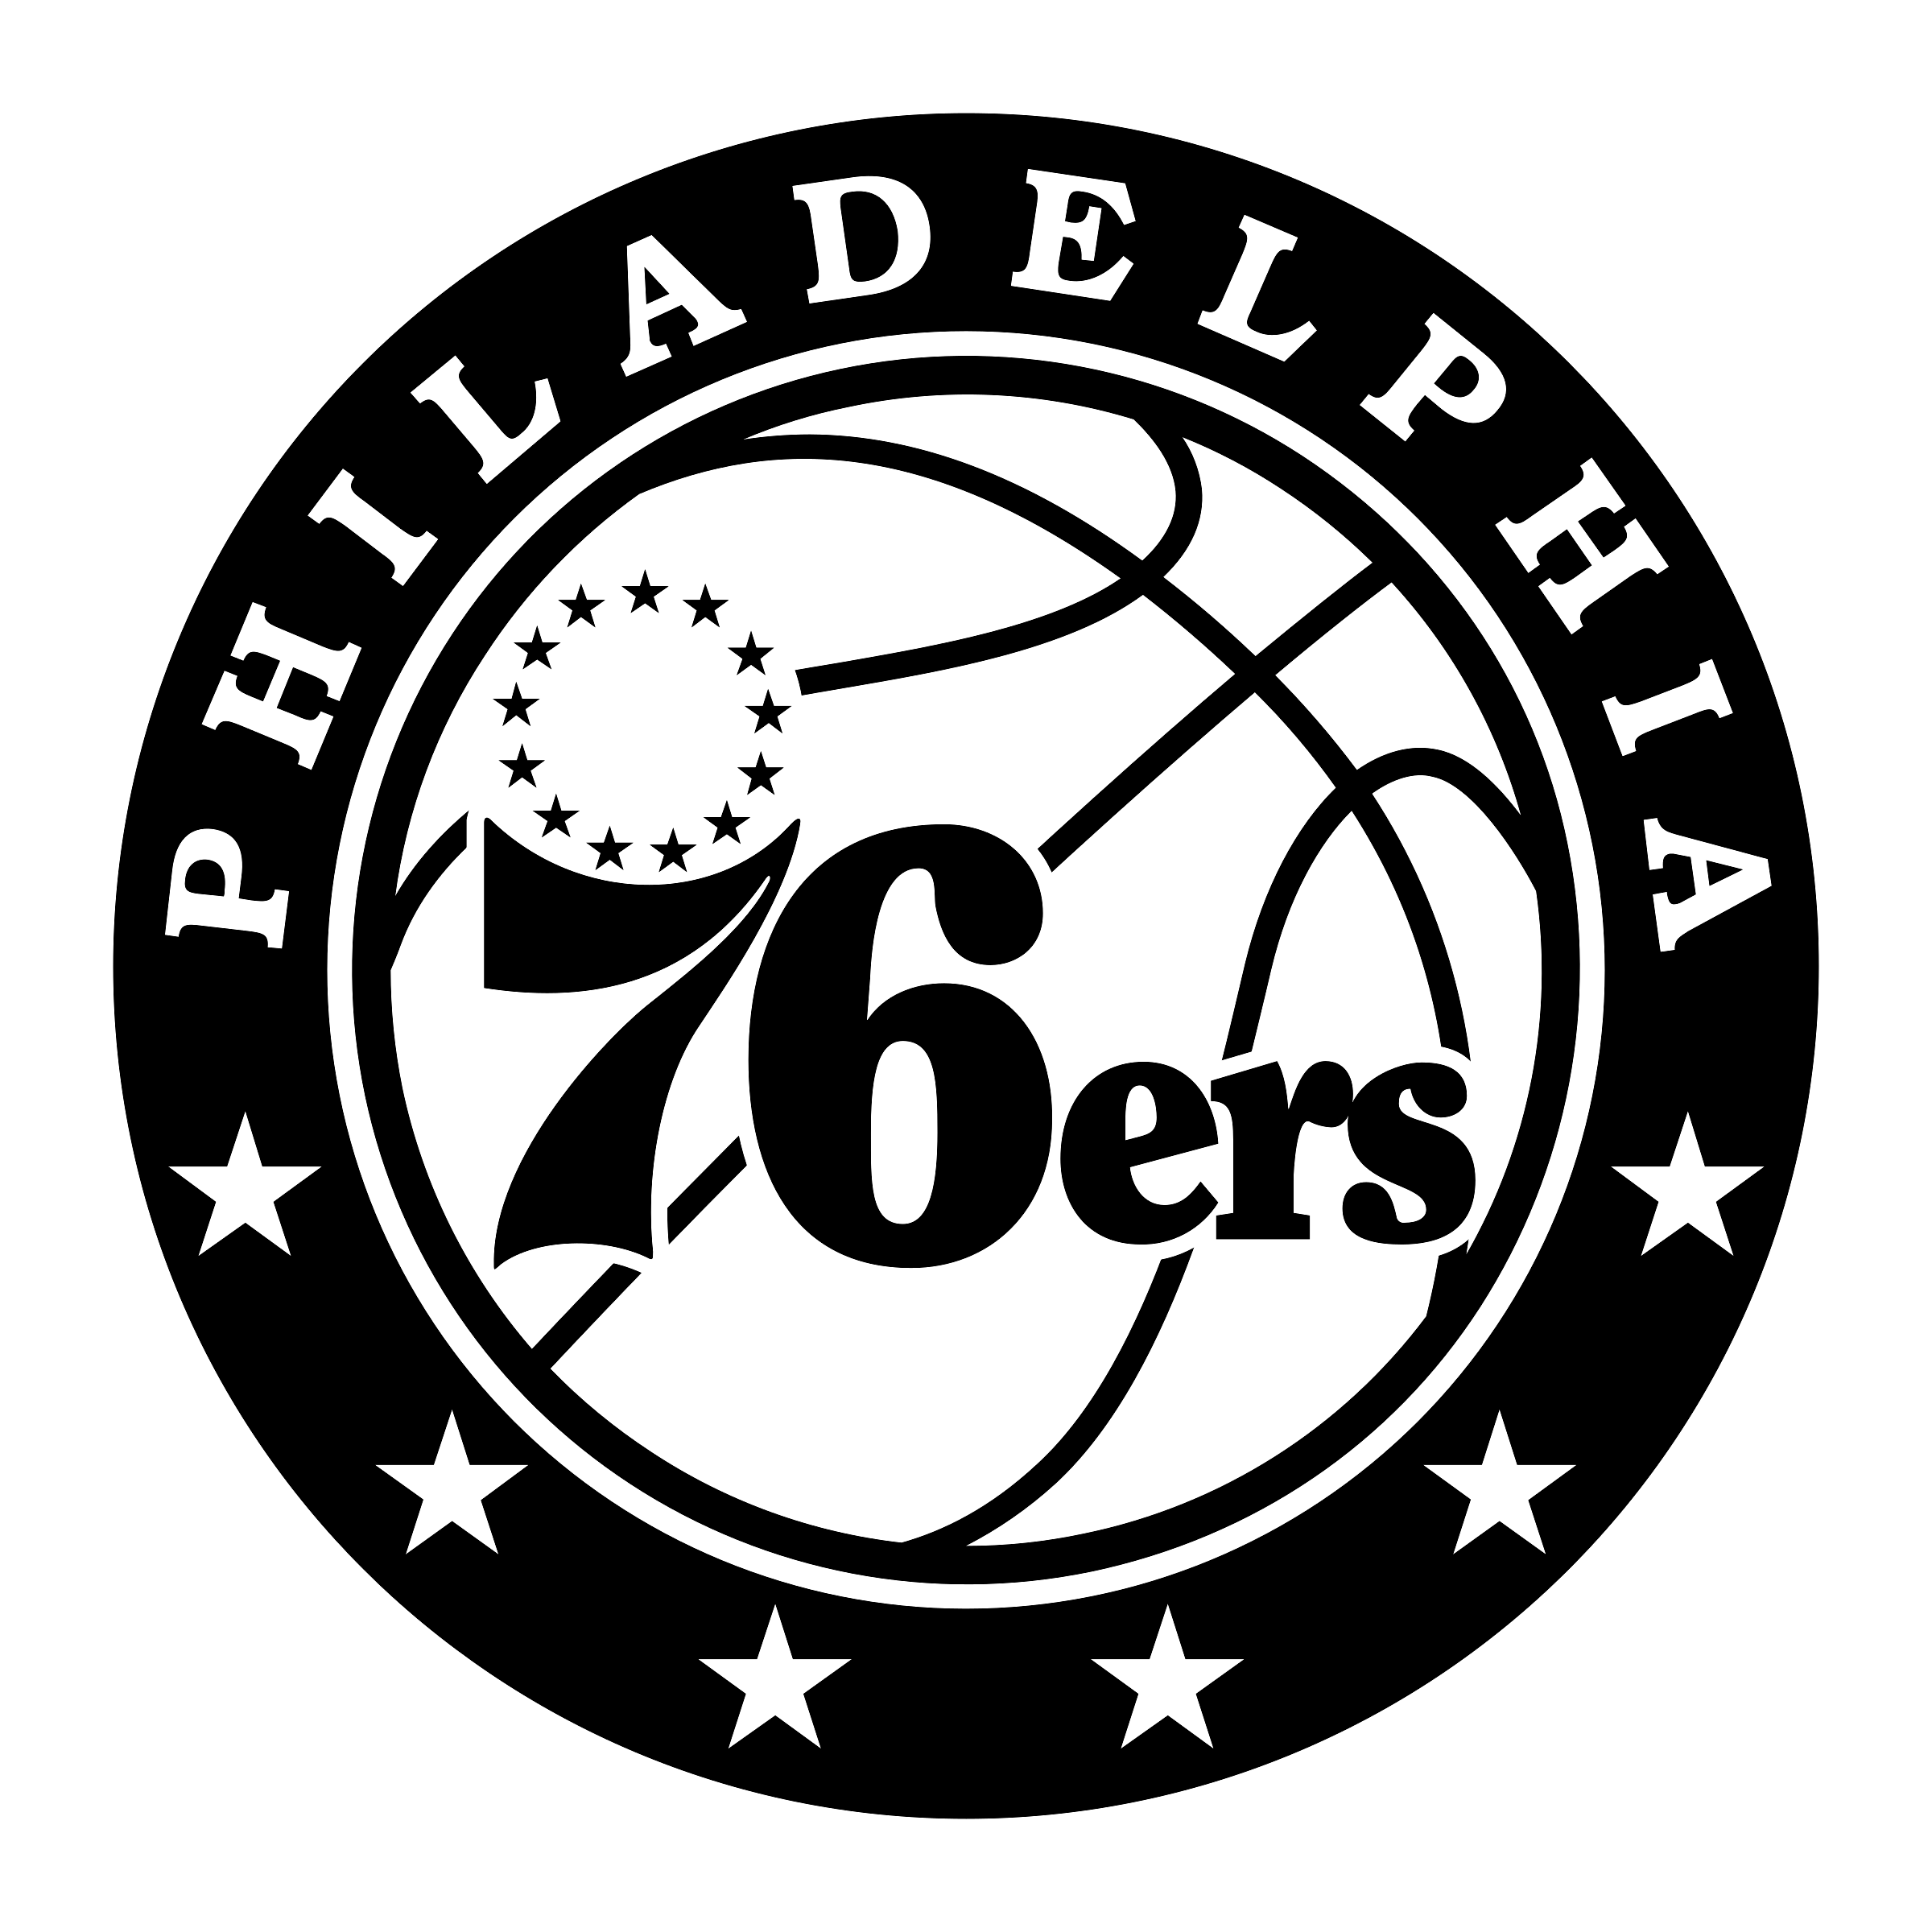 Philadelphia 76ers Logo PNG Transparent & SVG Vector.